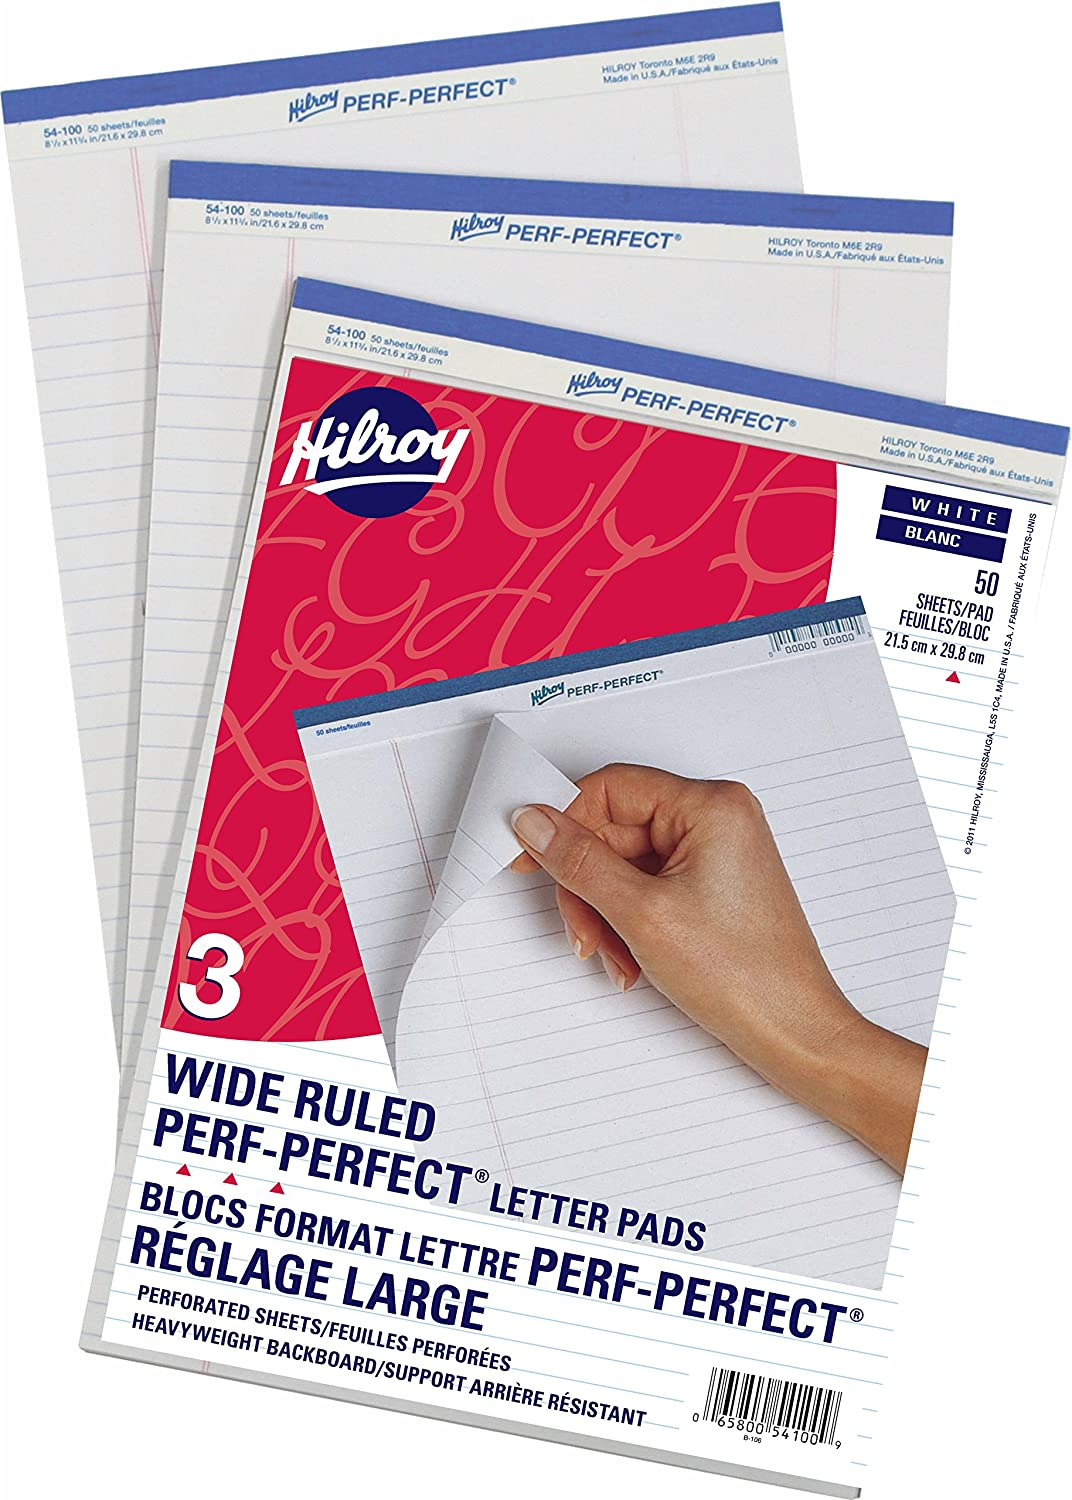 Hilroy 54100 Perf-Perfect Writing Pads, 5/16-Inch Wide Rule with Margin, 8-1/2x11-3/4-Inch, White, 50-Sheets, 3/Pack